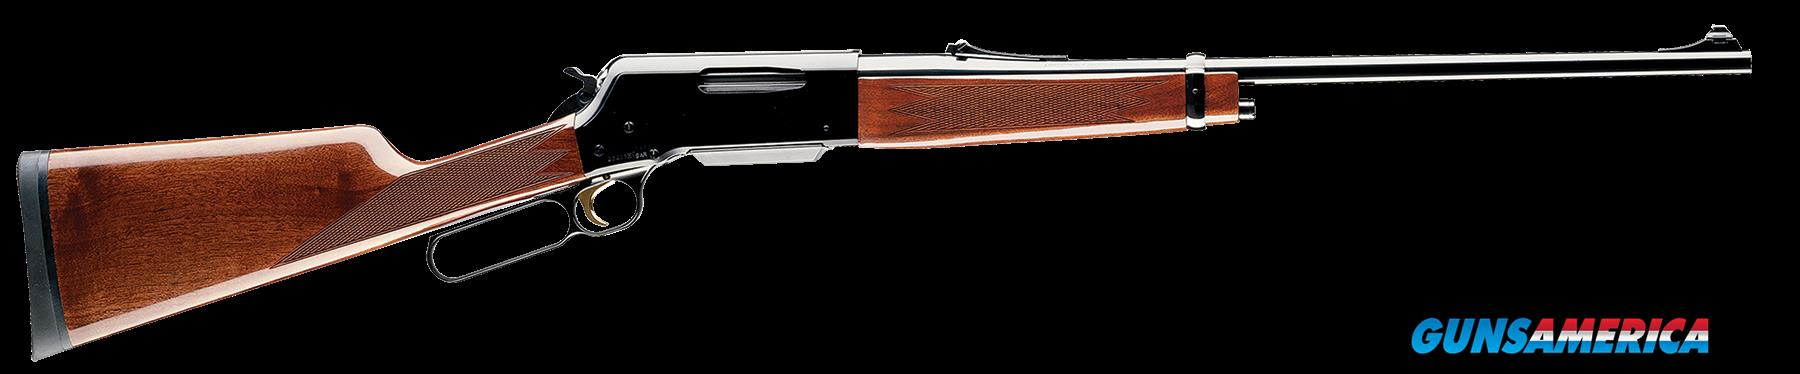 "Browning 034006126 BLR Lightweight 81 Lever 30-06 Springfield 22"" 4+1 Walnut Stock Blued  Guns > Rifles > Browning Rifles > Lever Action"